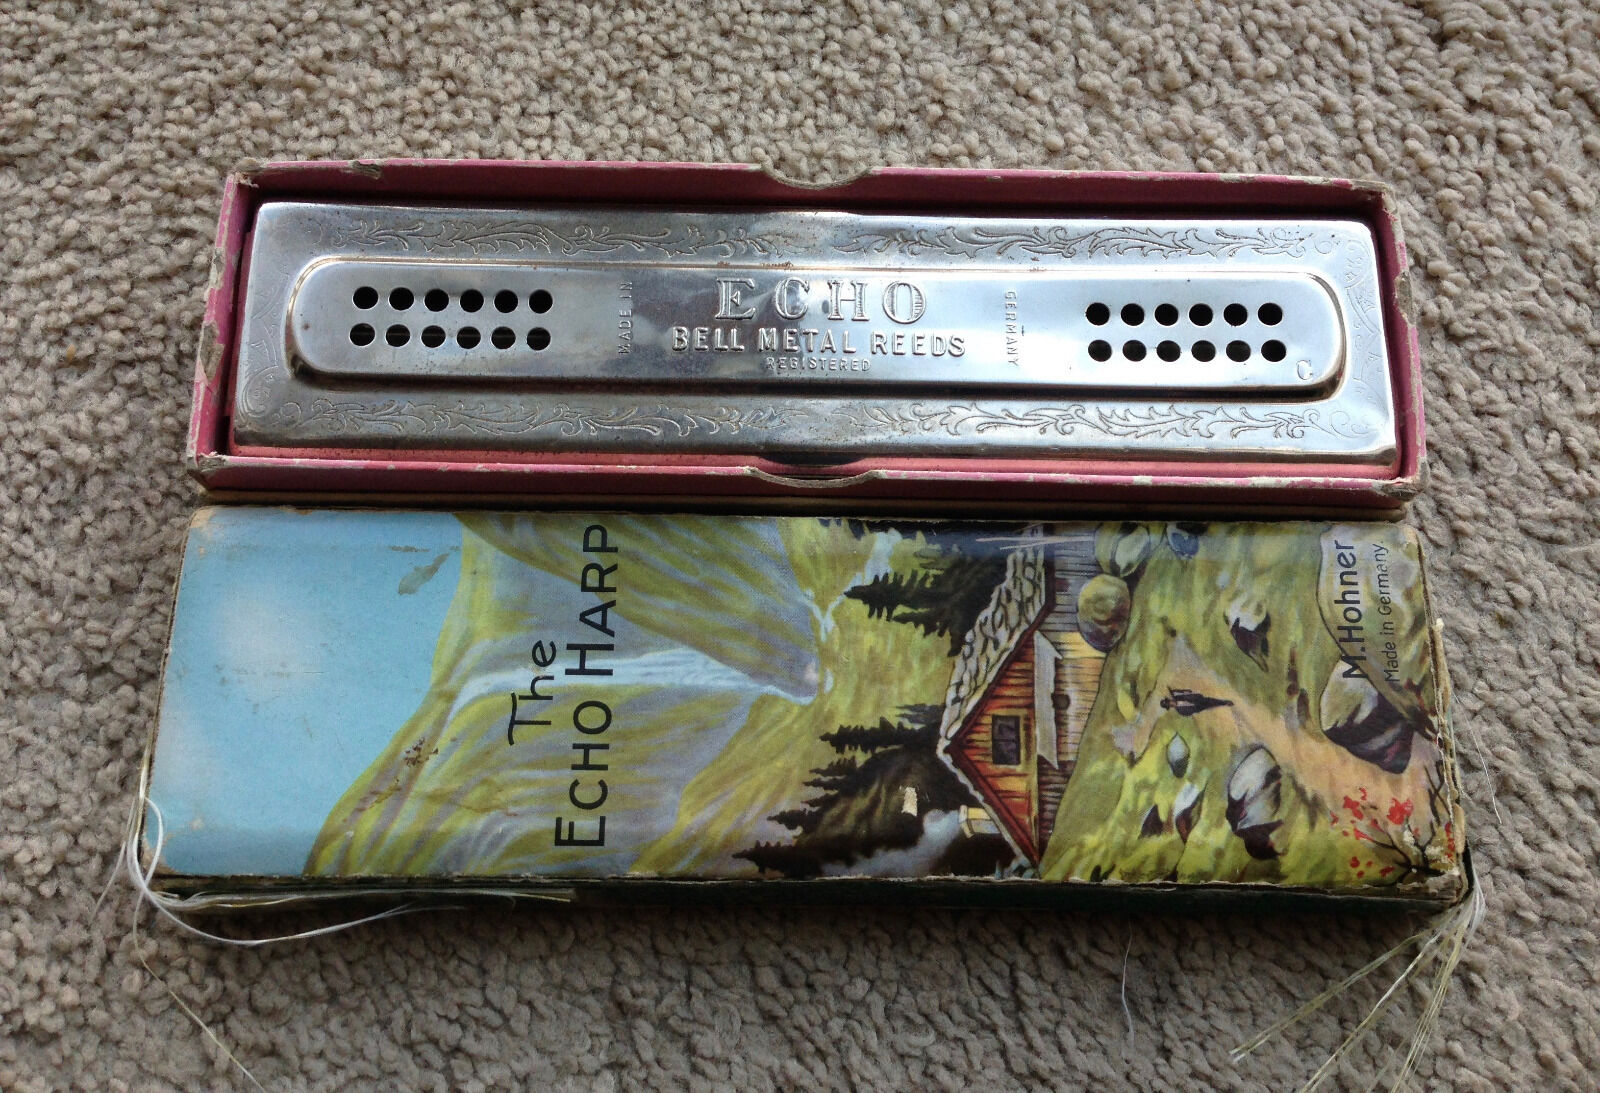 Echo Bell Metal Reeds Harmonica hohner C and G